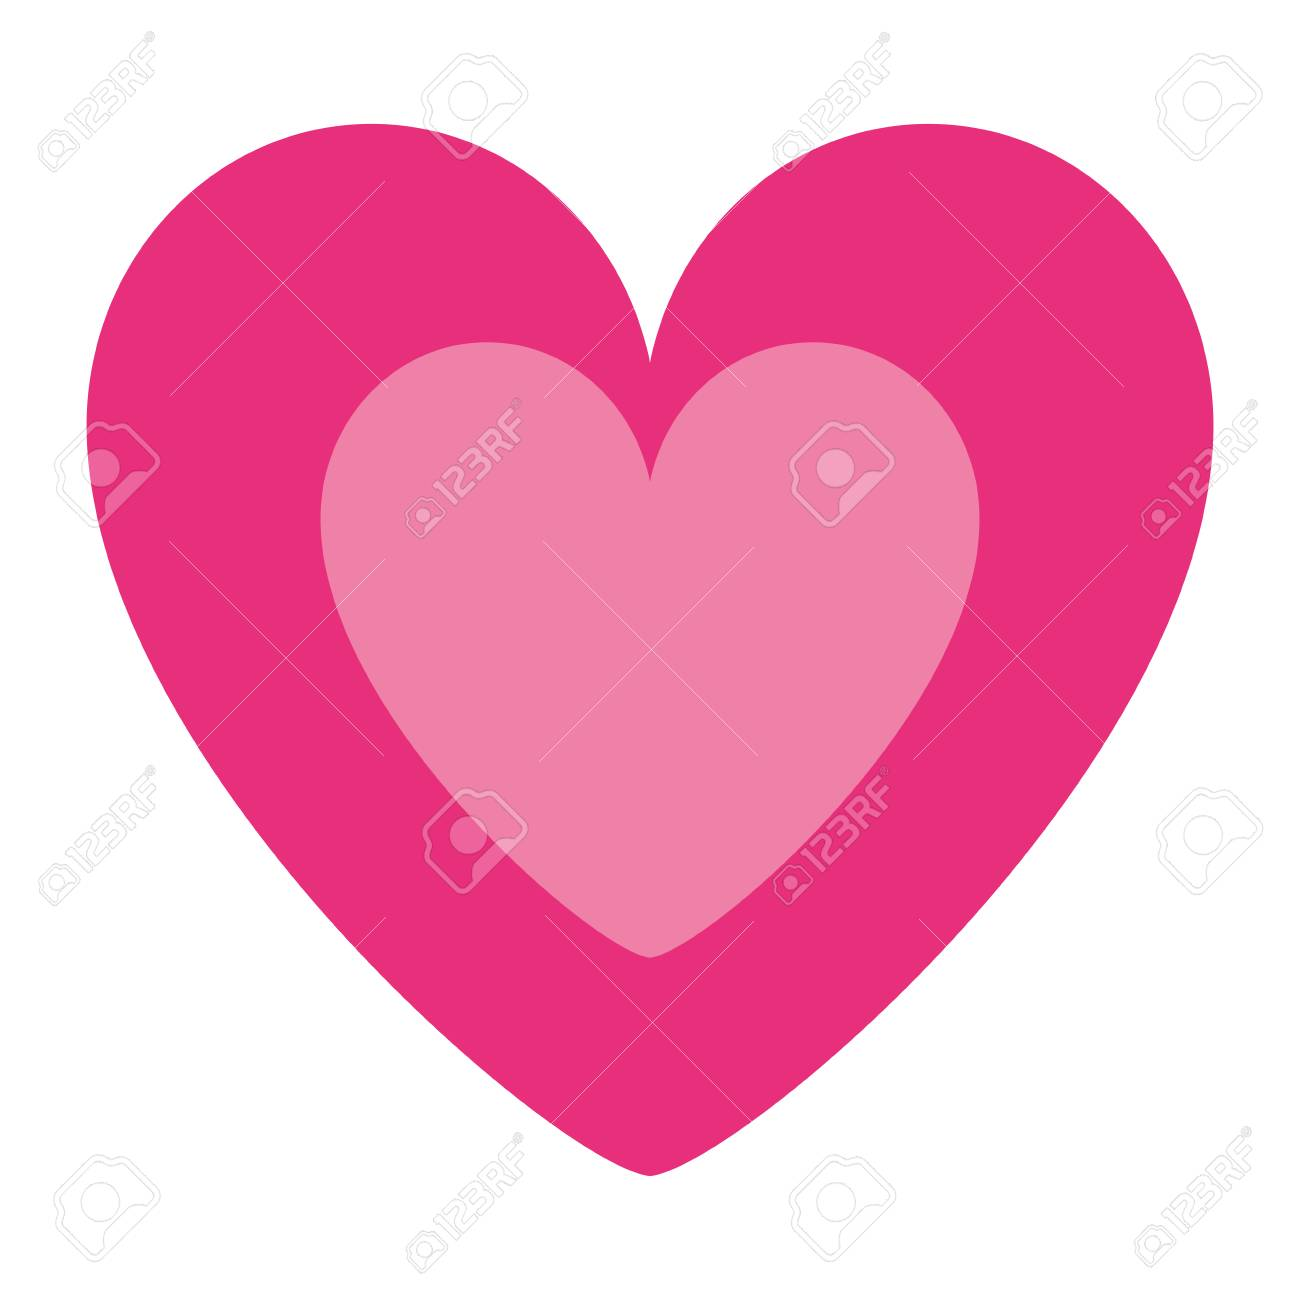 Cute Pink Heart In Love Decoration Vector Illustration Royalty Free